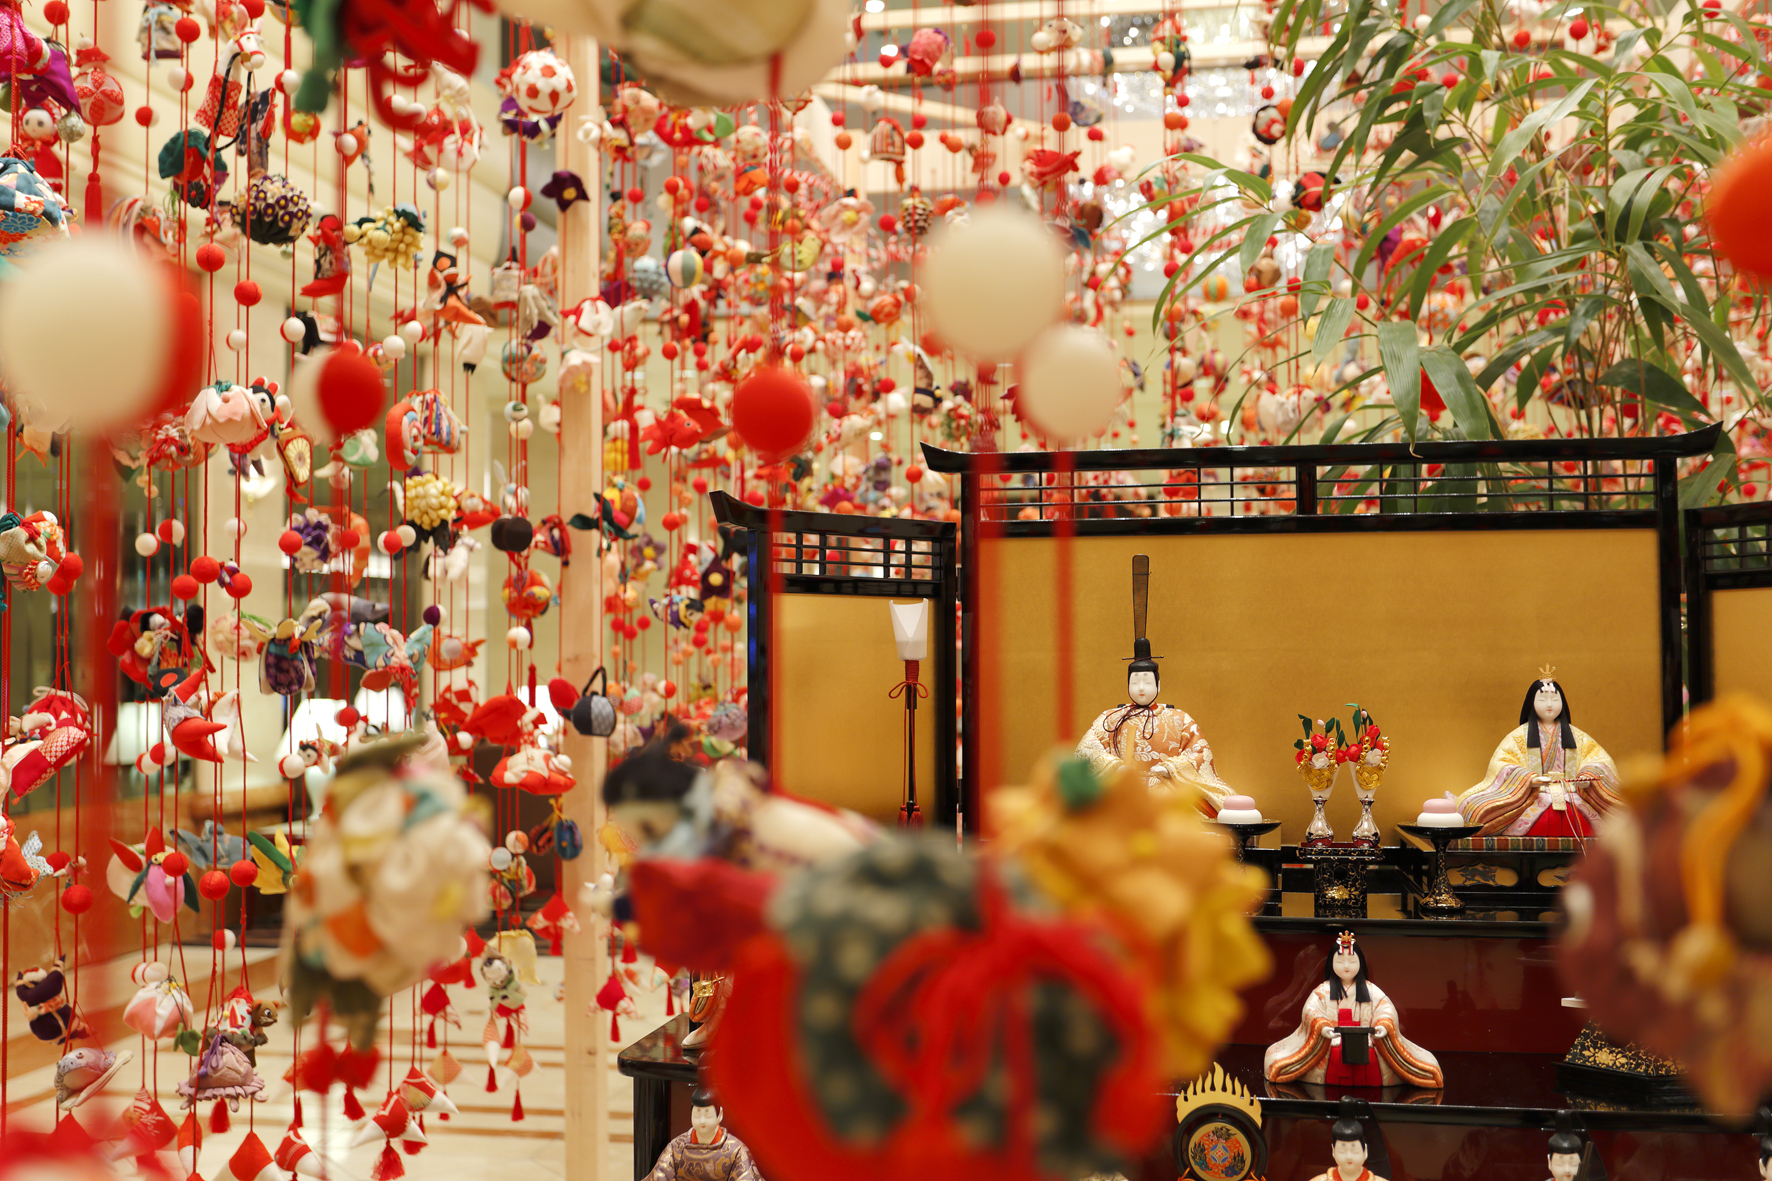 Keio Plaza Hotel Displays Traditional Japanese Dolls and